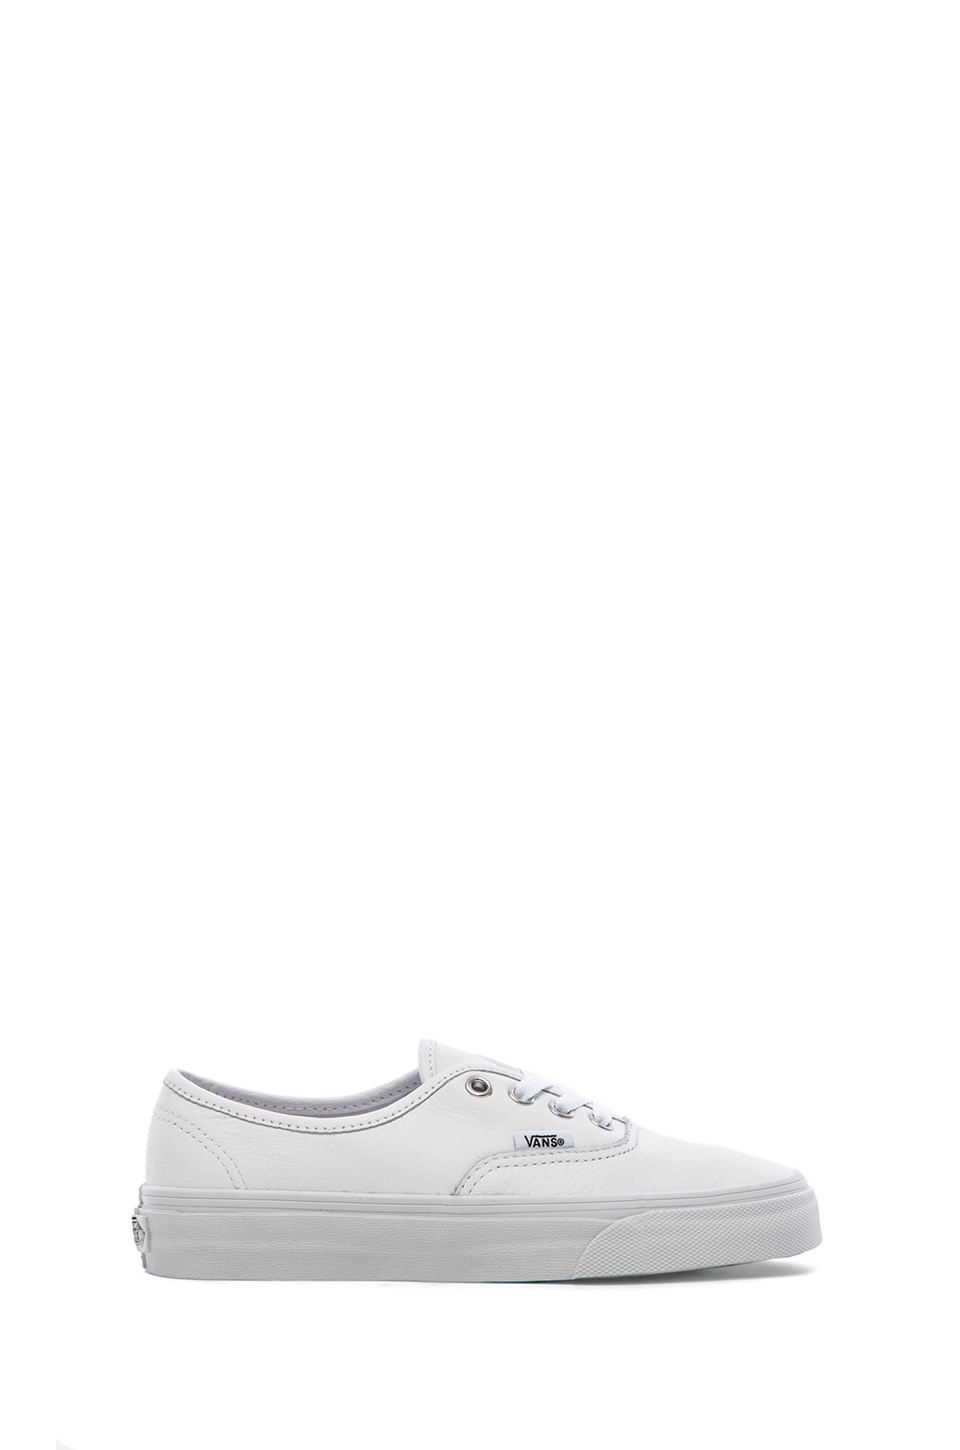 Vans U Authentic Sneaker in True White